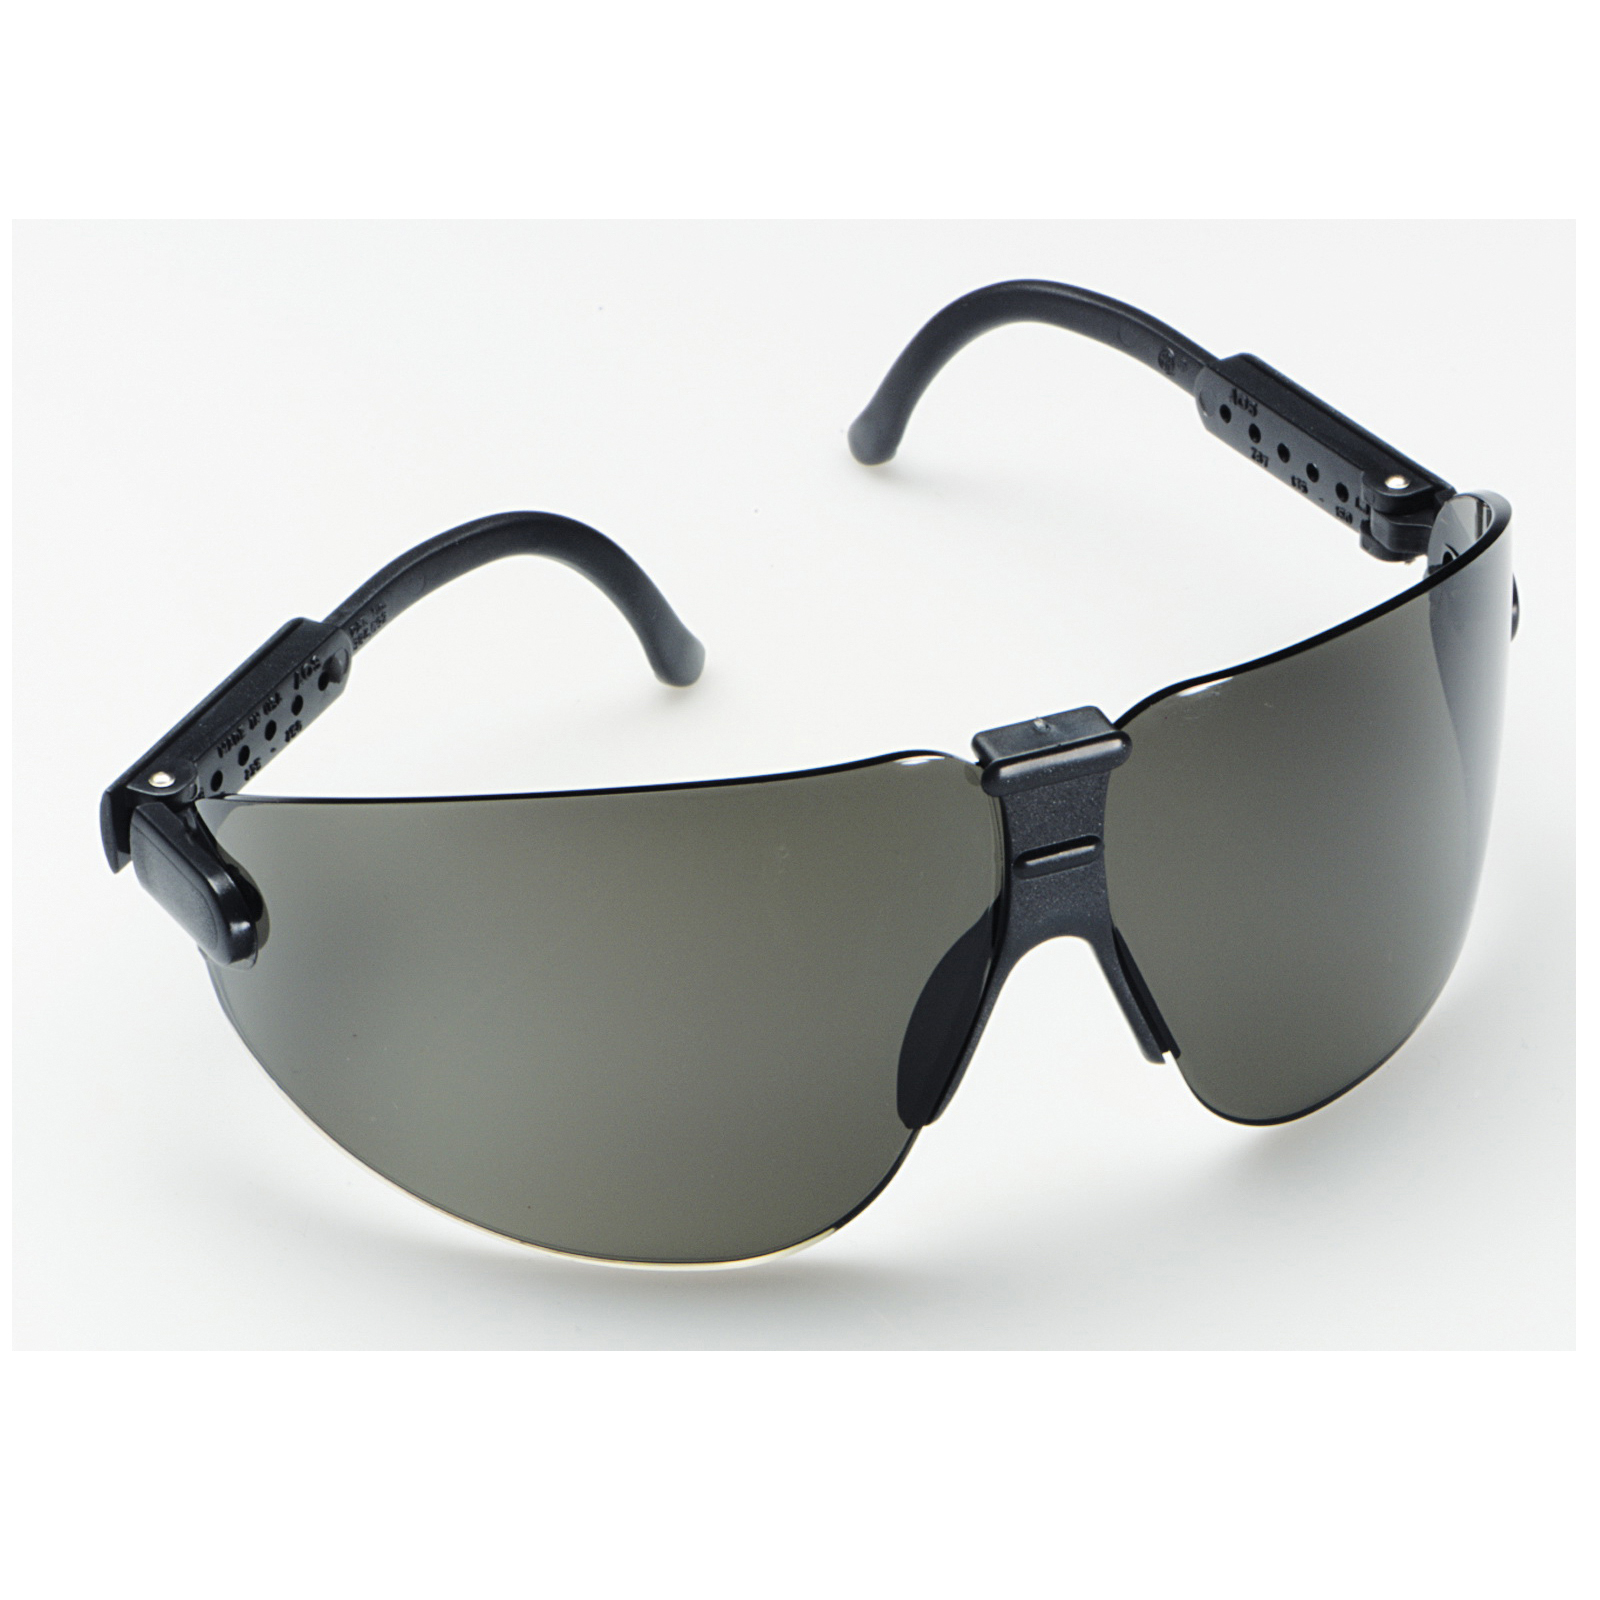 3M™ Lexa™ Fighter 078371-62289 Protective Glasses, DX™ Anti-Fog, Gray Lens, Frameless Frame, Black, Polycarbonate Lens, ANSI Z87.1, CSA Z94.3